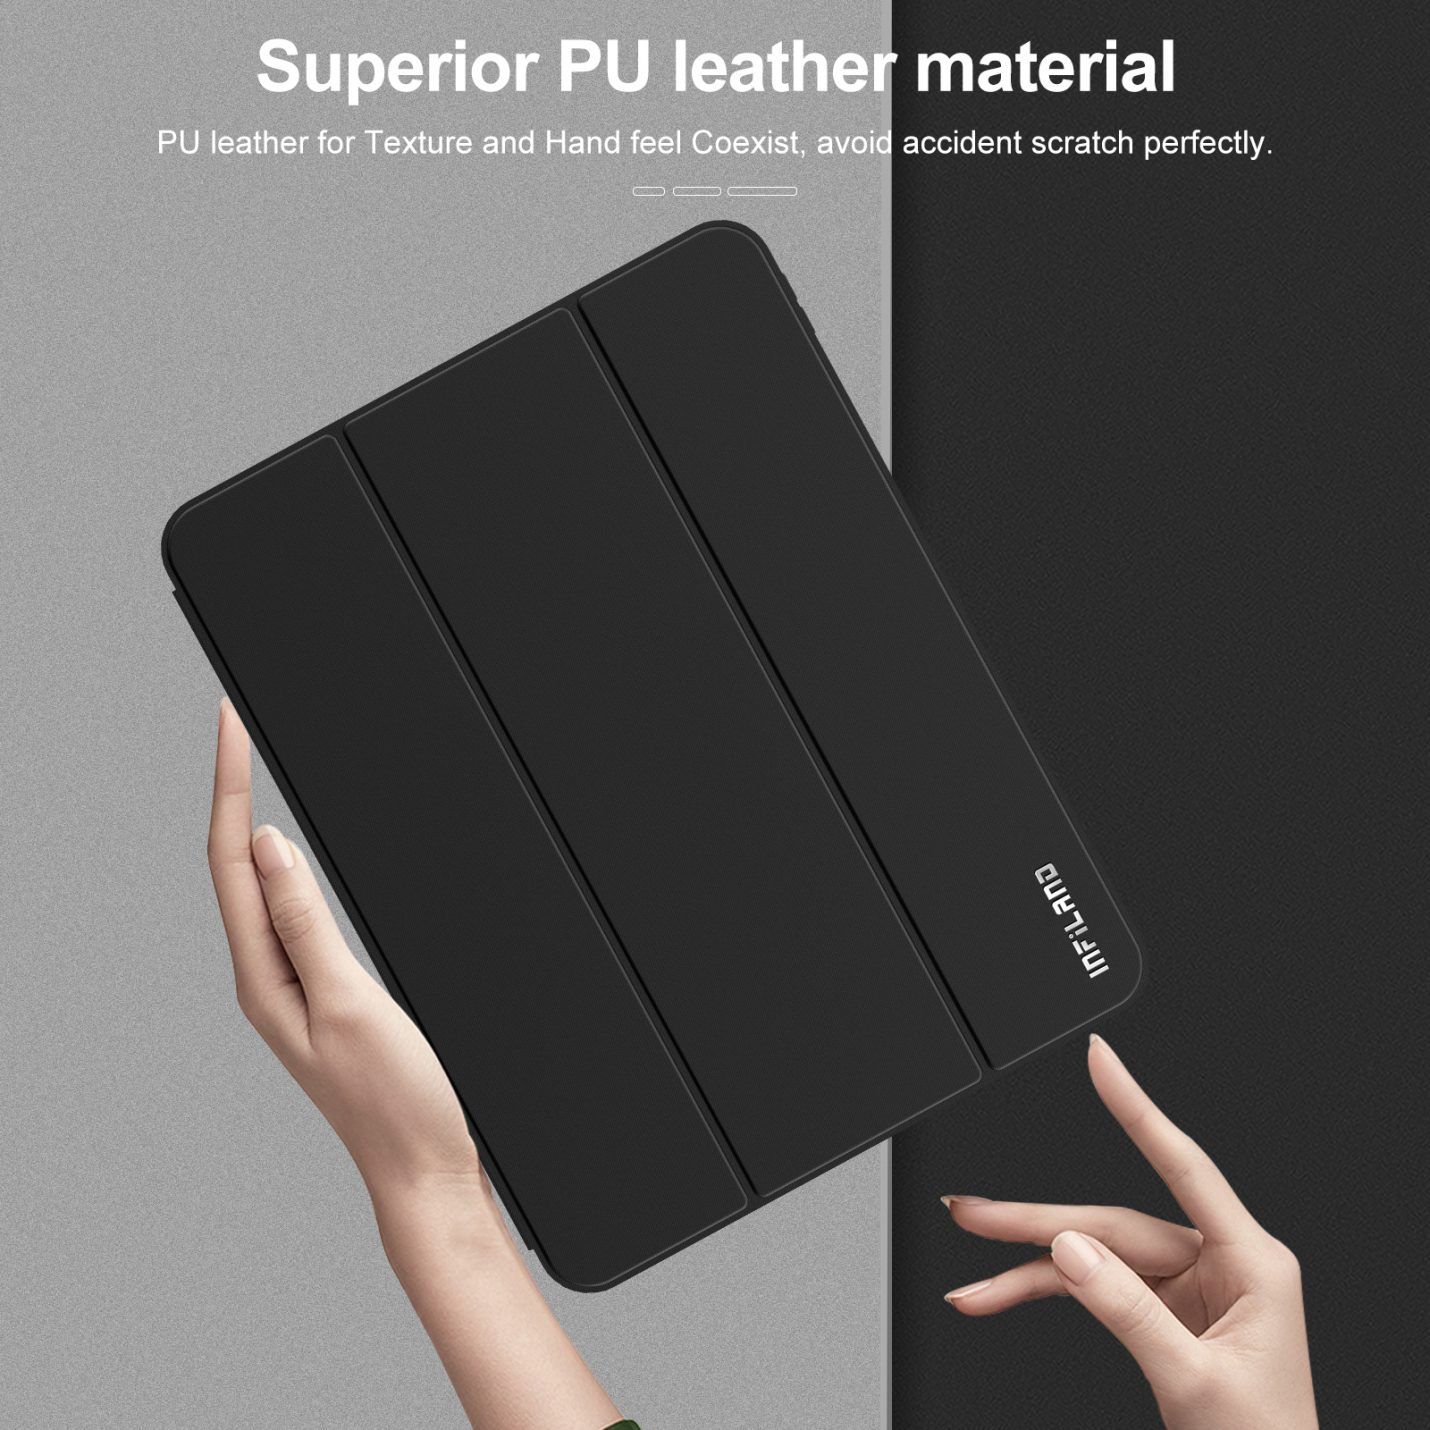 INFILAND Case for iPad Pro 11 inch 2021/2020/2018